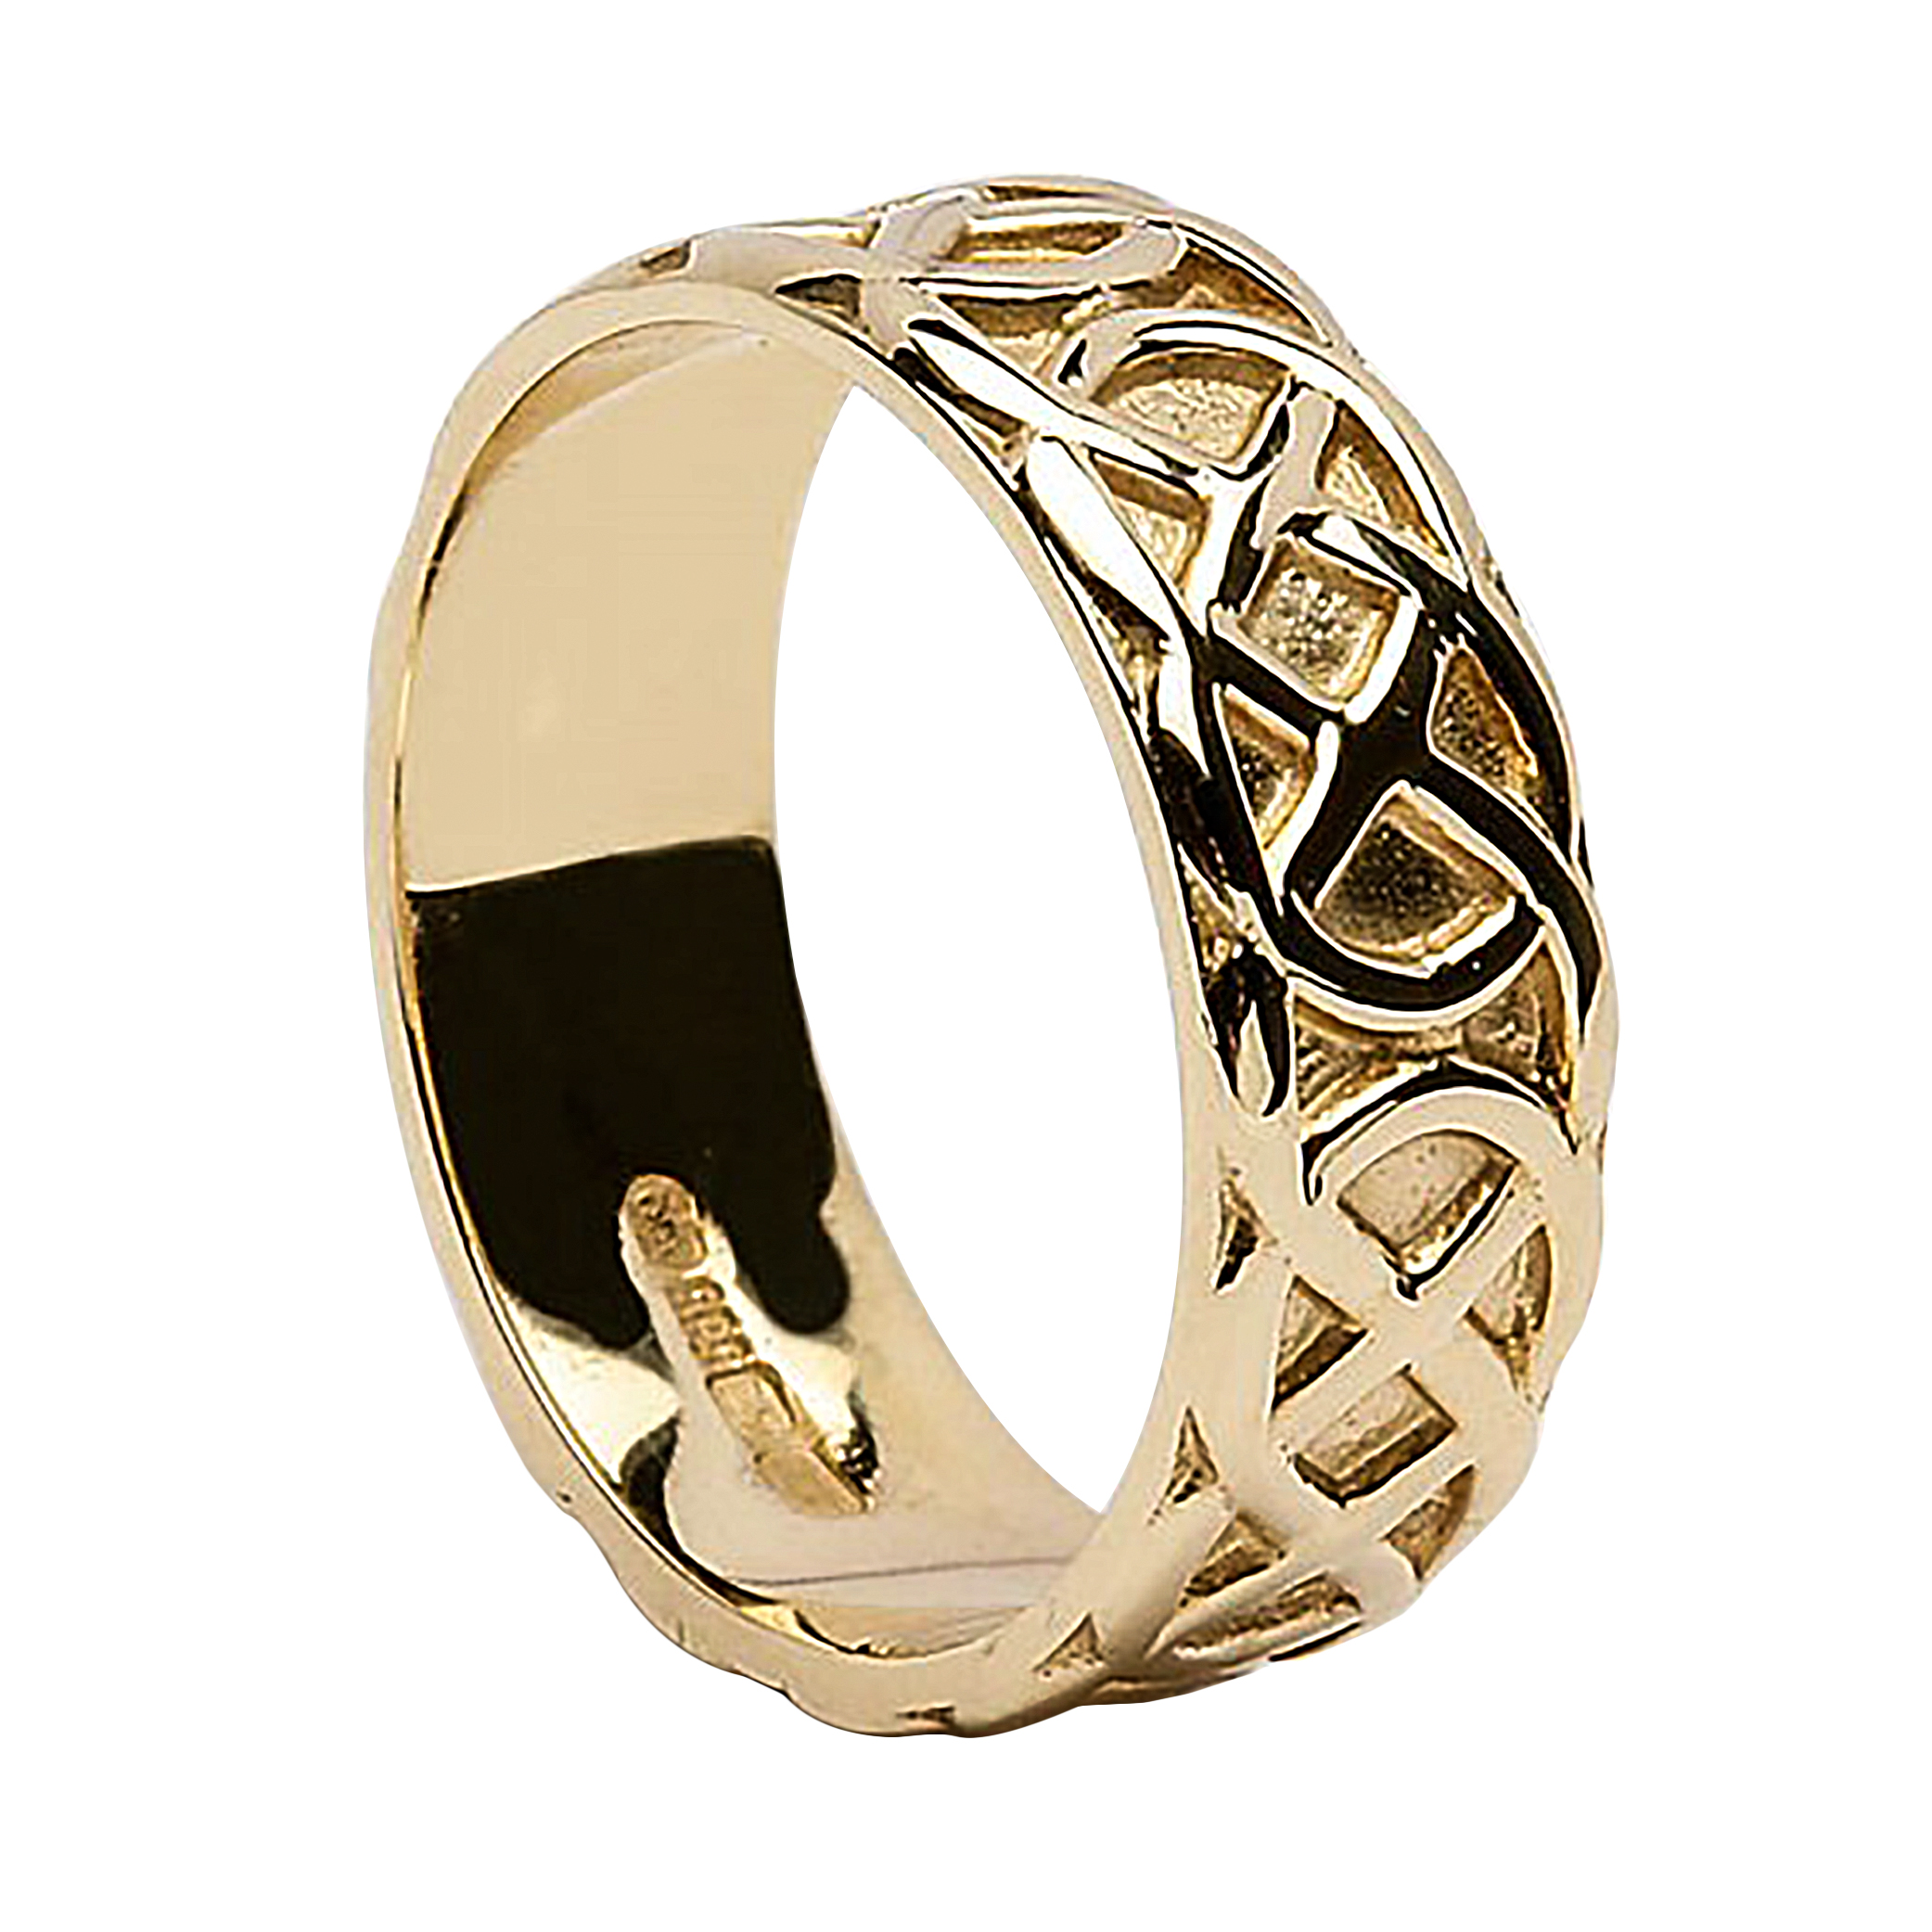 tone two product rings comfort overstock knot bands gold s fit mens watches wedding free celtic shipping love men today jewelry